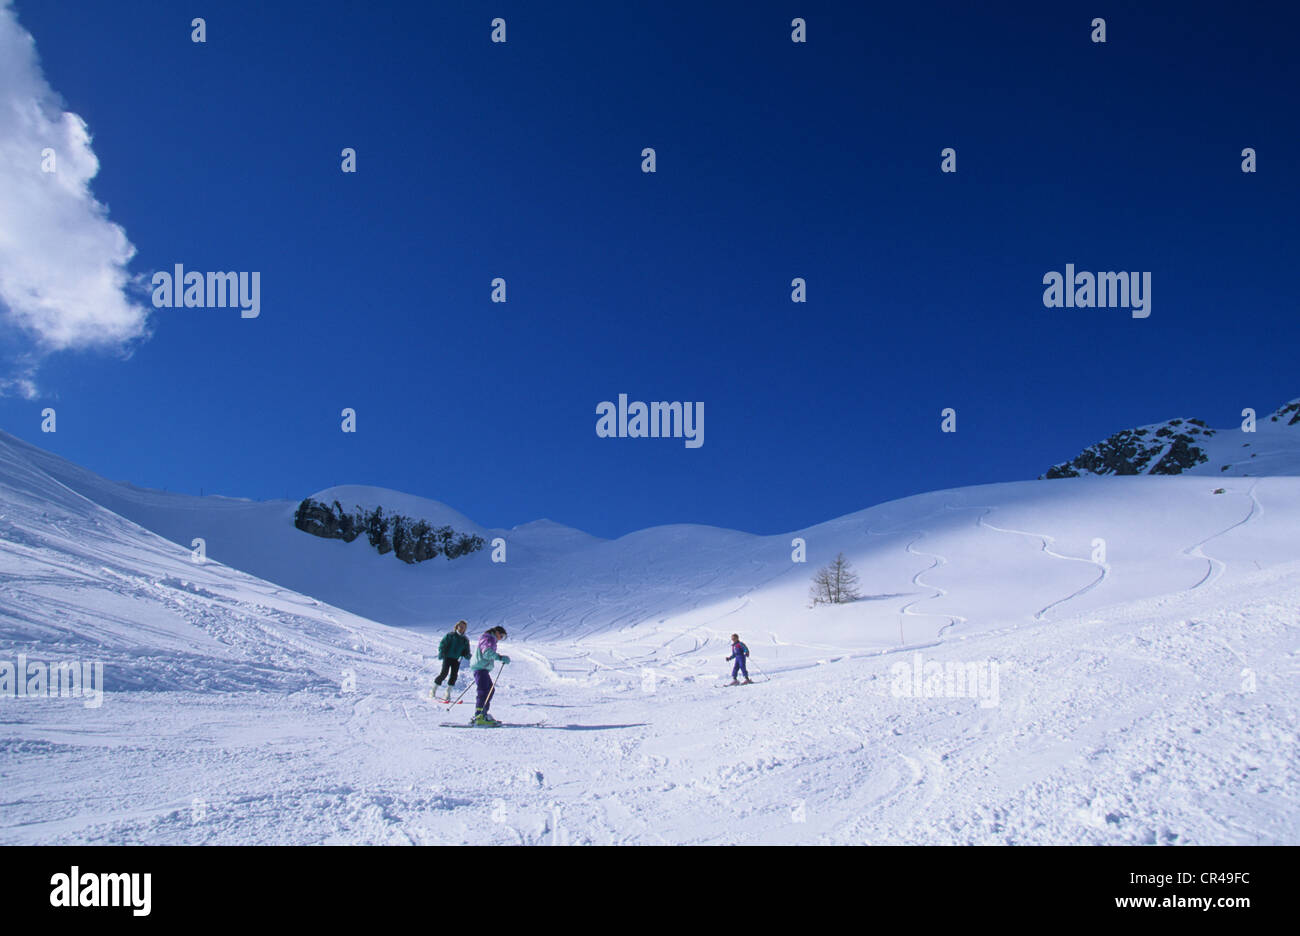 france, hautes alpes, reallon ski resort, nearby aiguilles de stock